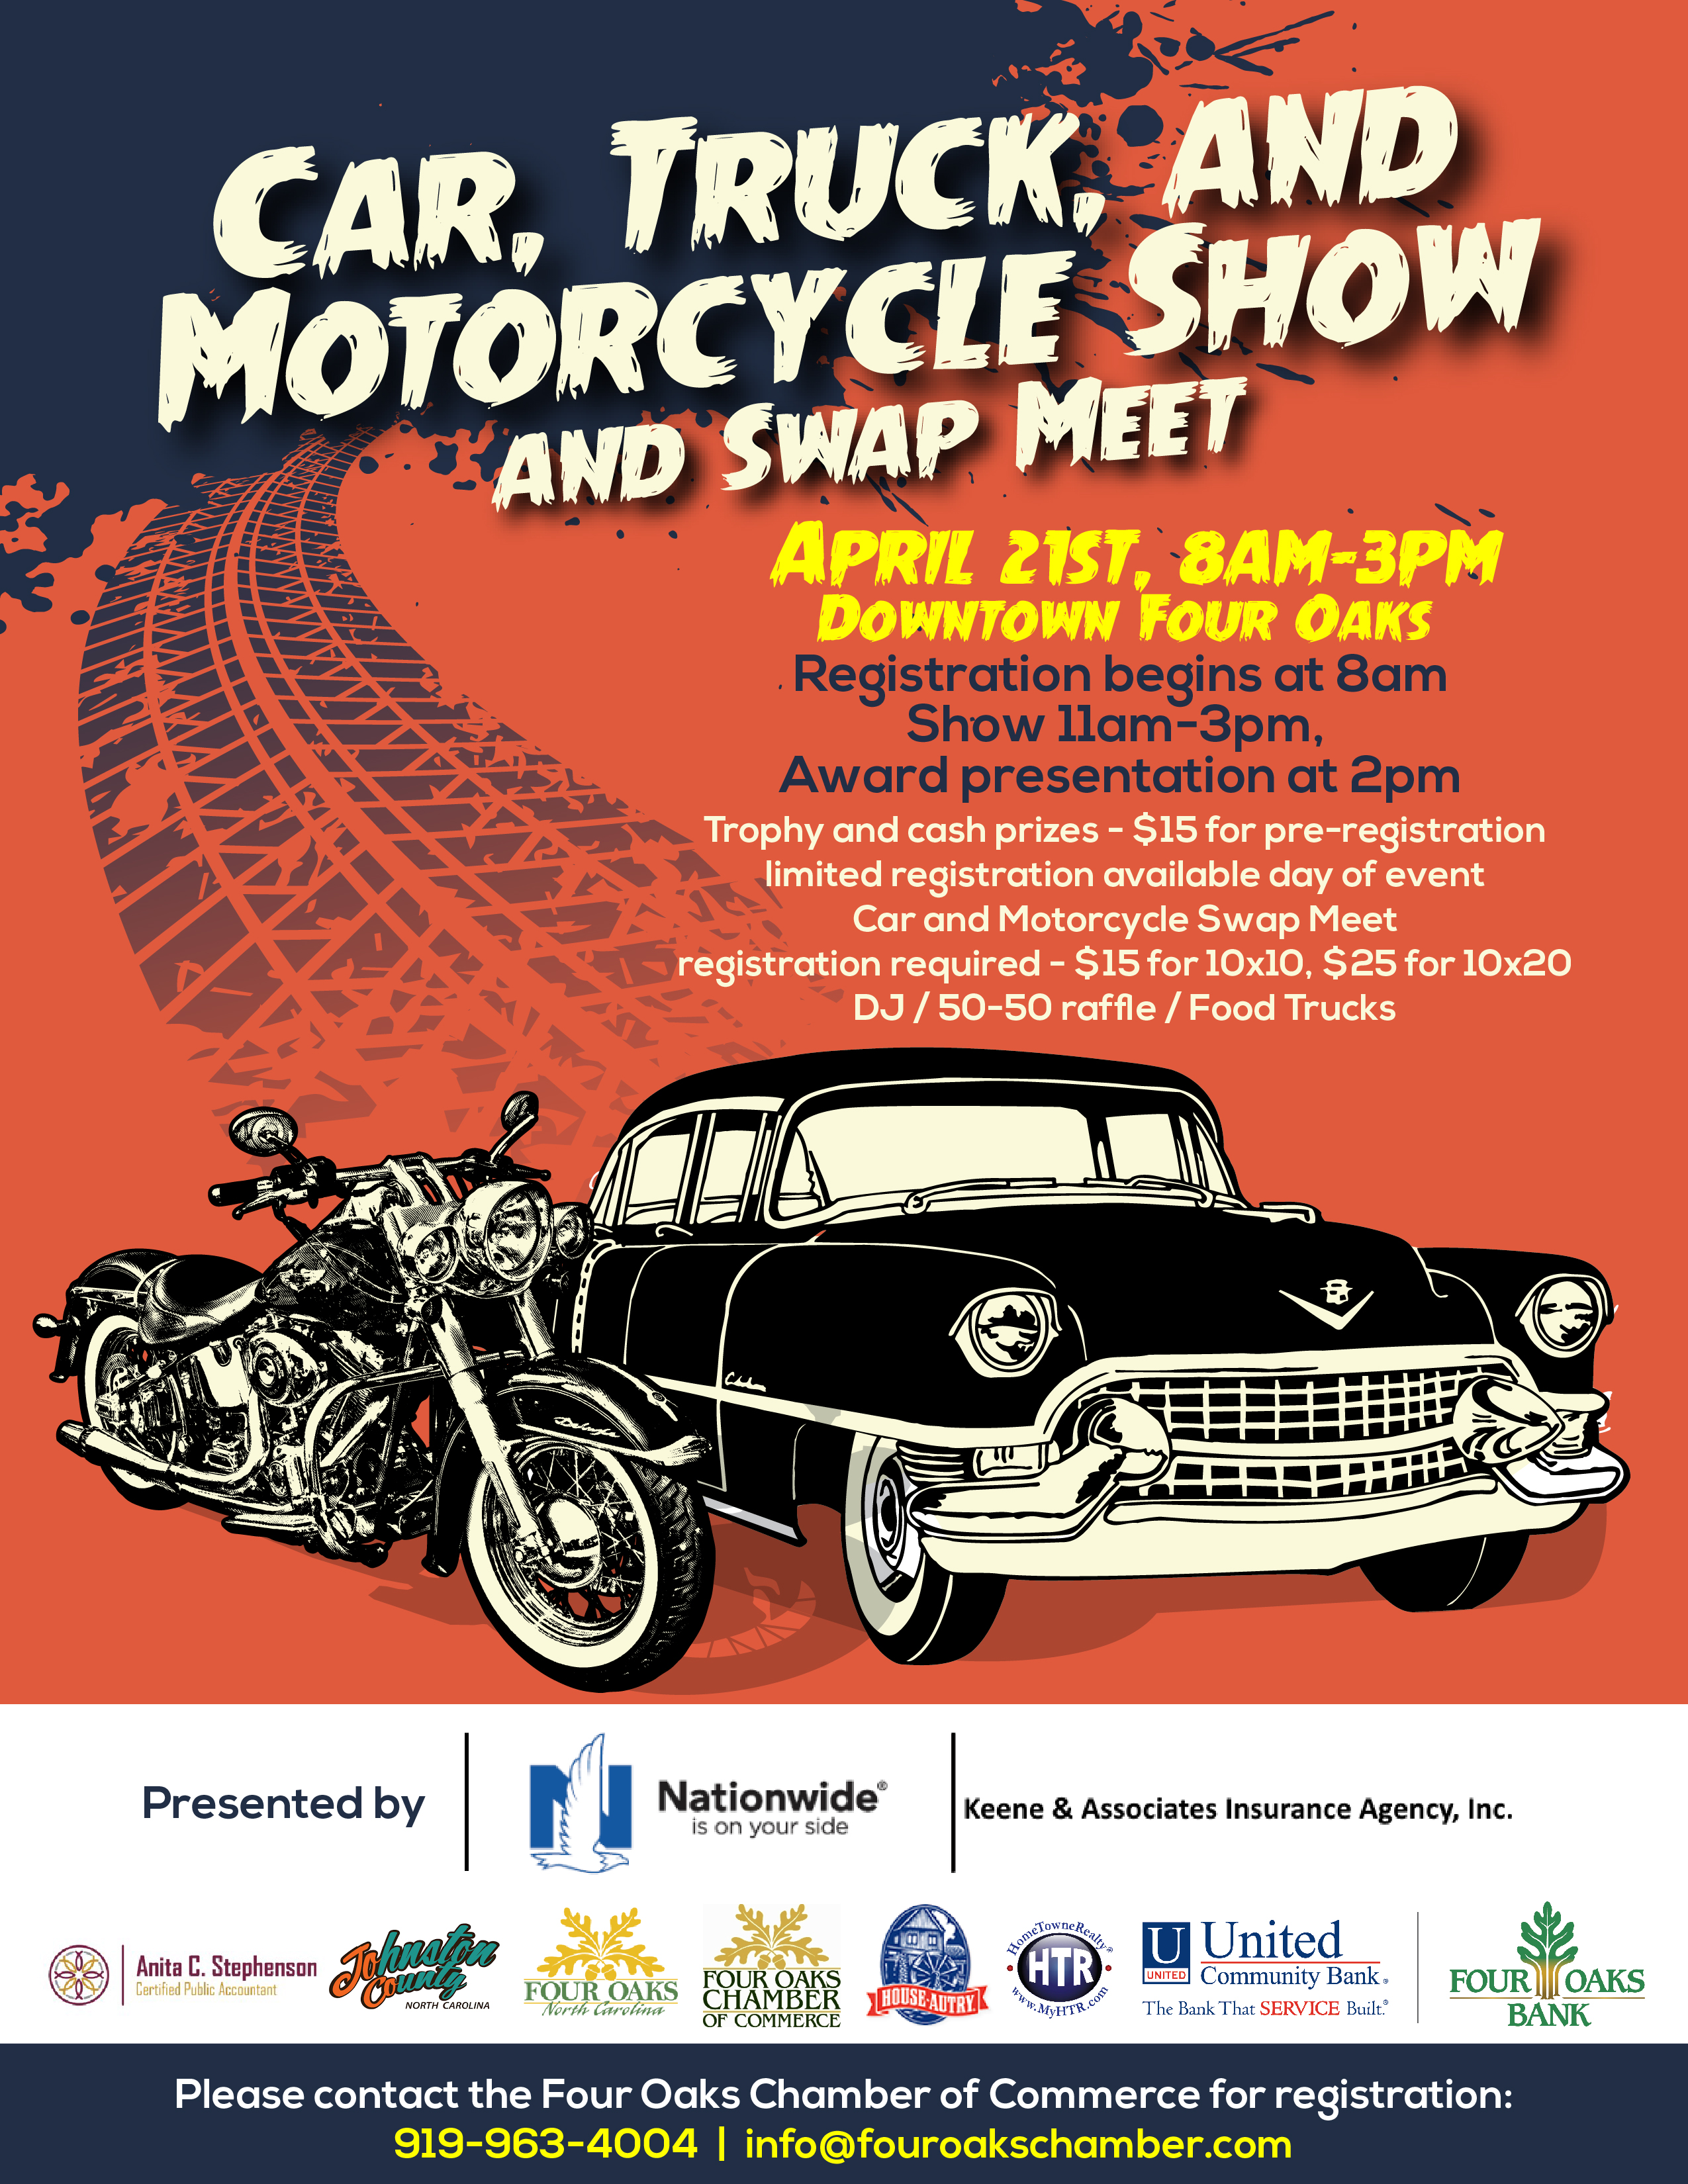 Four Oaks Car Truck And Motorcycle Show JohnstonNowcom - Show your car